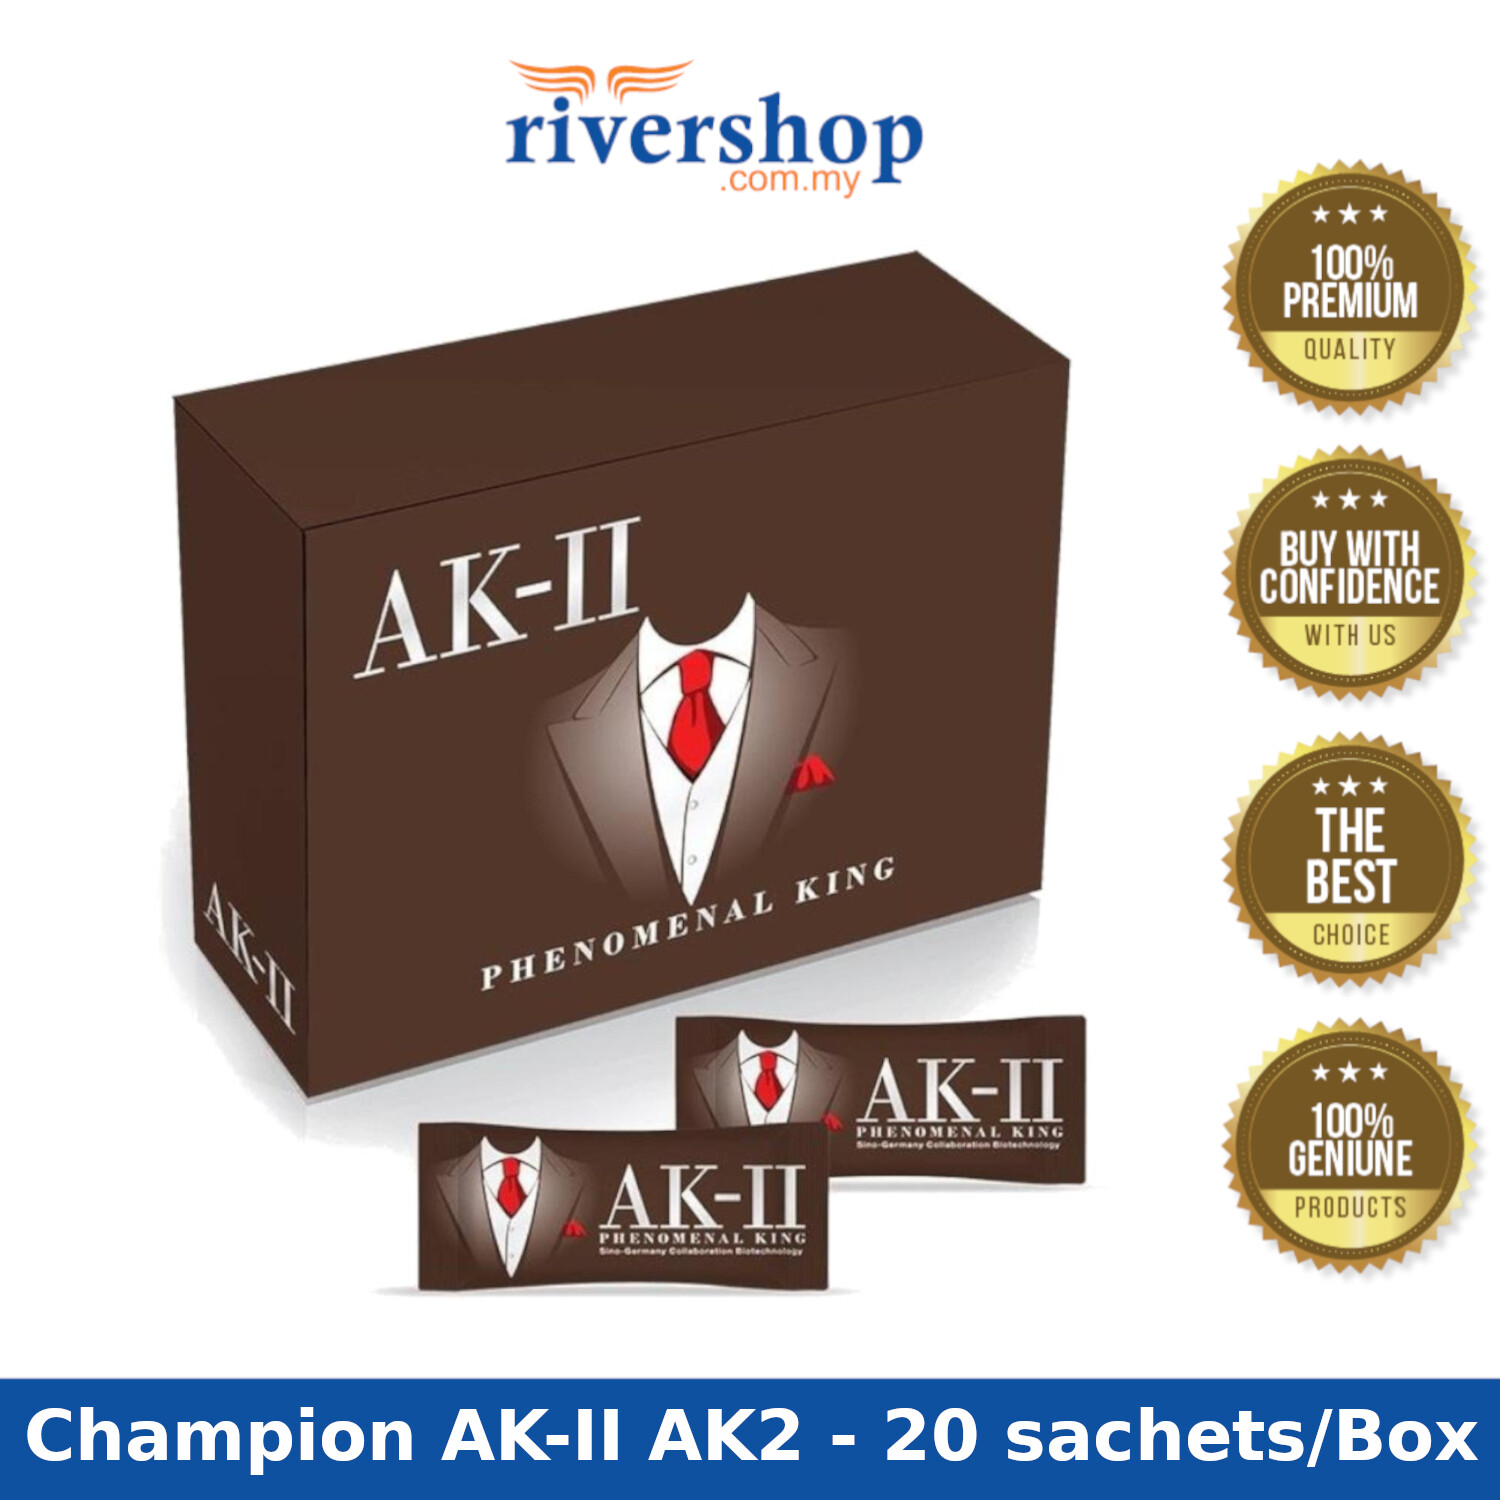 [Ready Stock] AK-II (AK2) or AK-II (K2) Phenomenal King AK2 for Men's Treasure